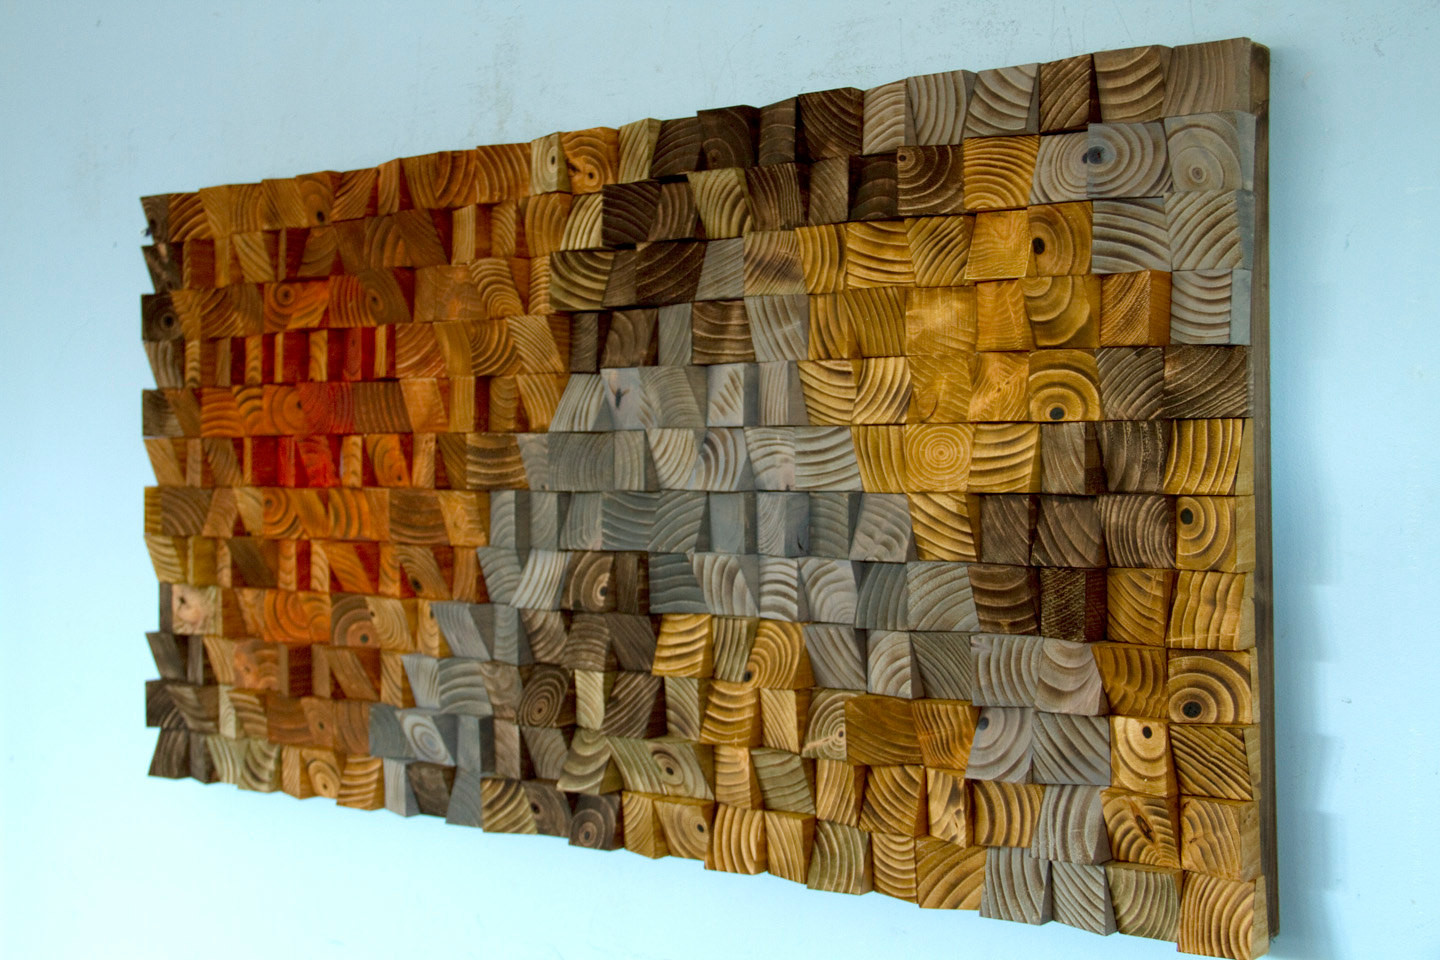 Best ideas about Wooden Wall Art . Save or Pin Rustic Wood wall Art wood wall sculpture abstract wood art Now.